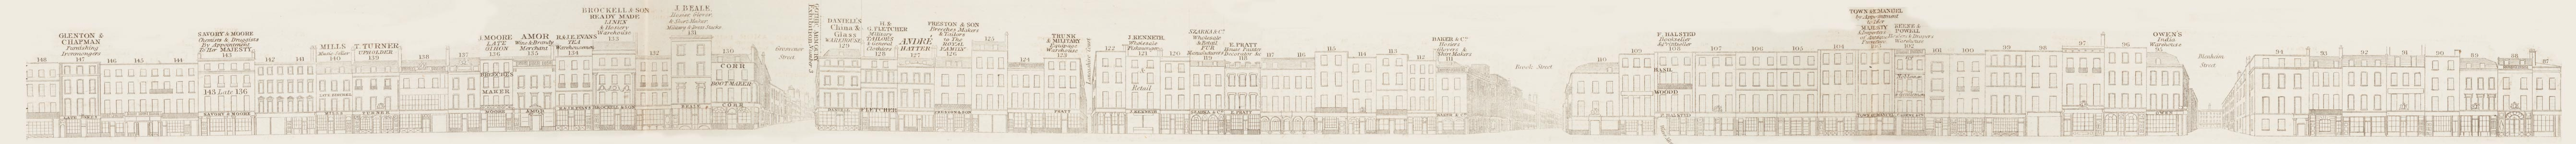 map - Tallis's London street views : No. 9. New Bond Street, division 2 (west)